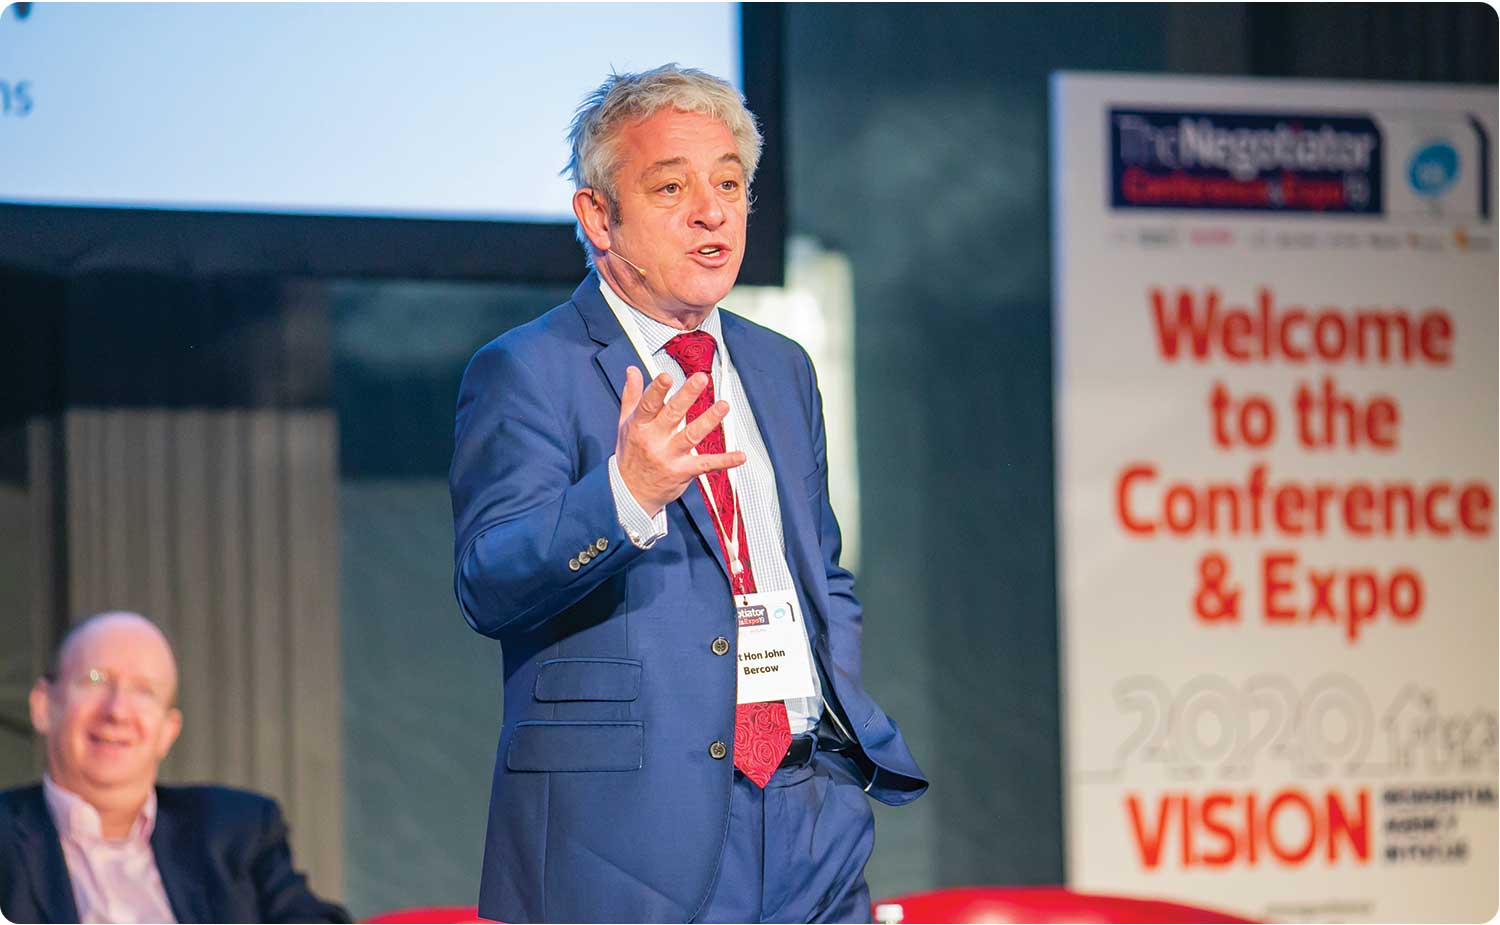 John Bercow The Negotiator Conference image